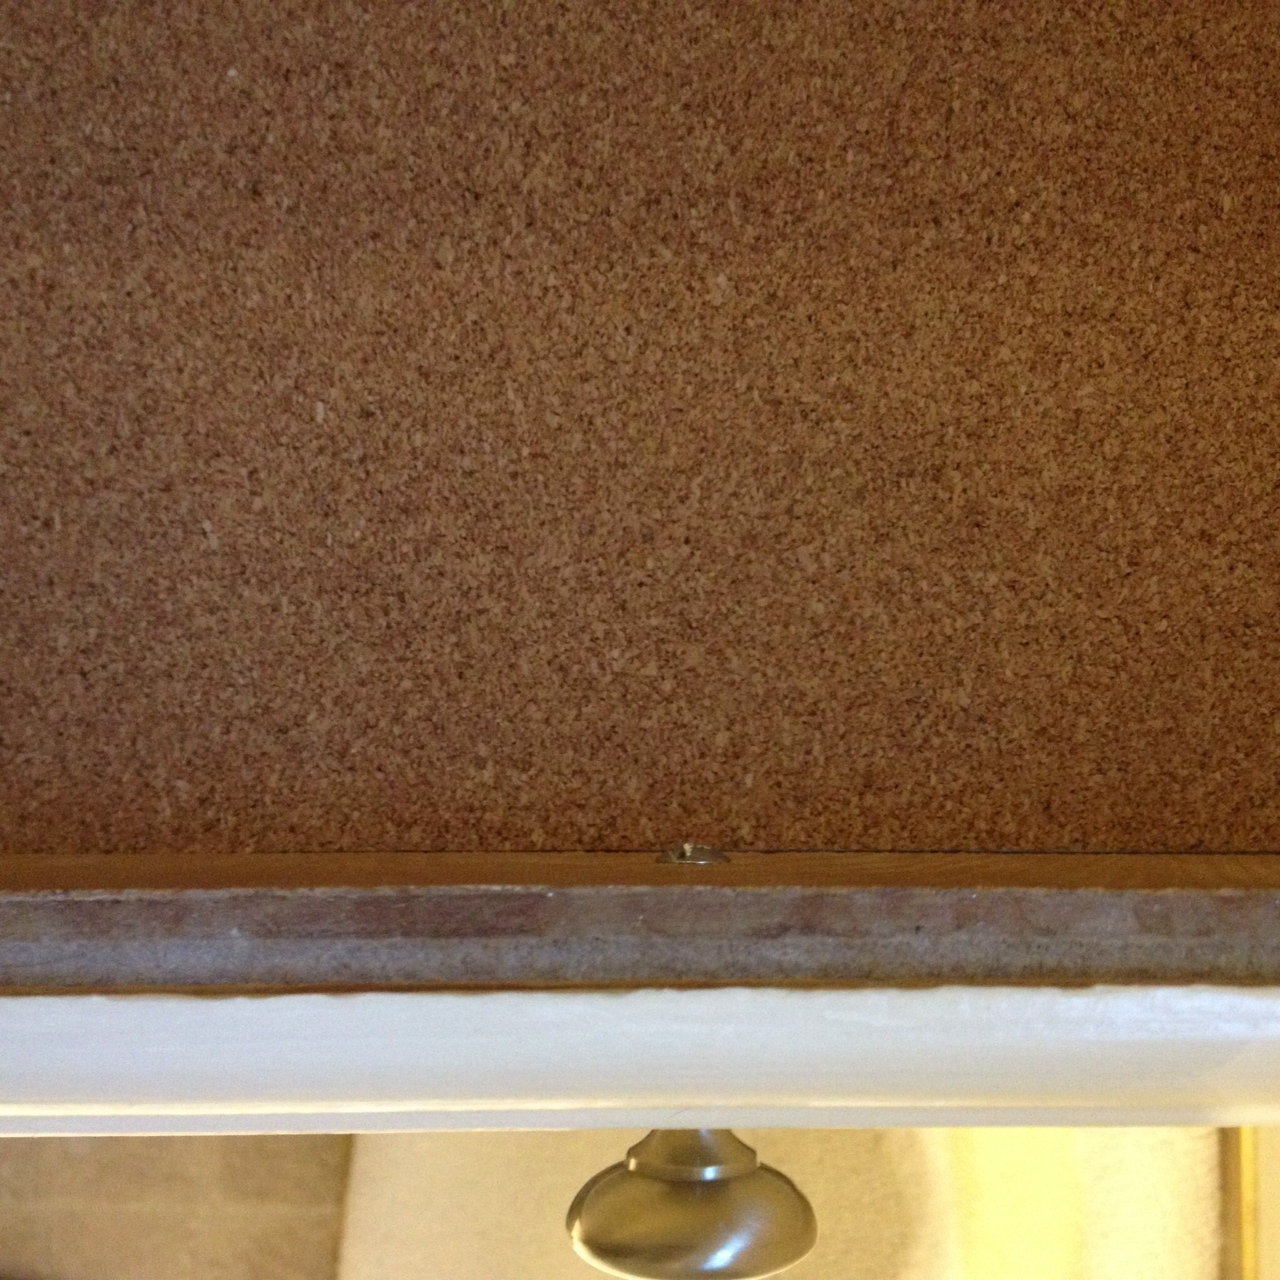 Lining Kitchen Cabinets With Cork